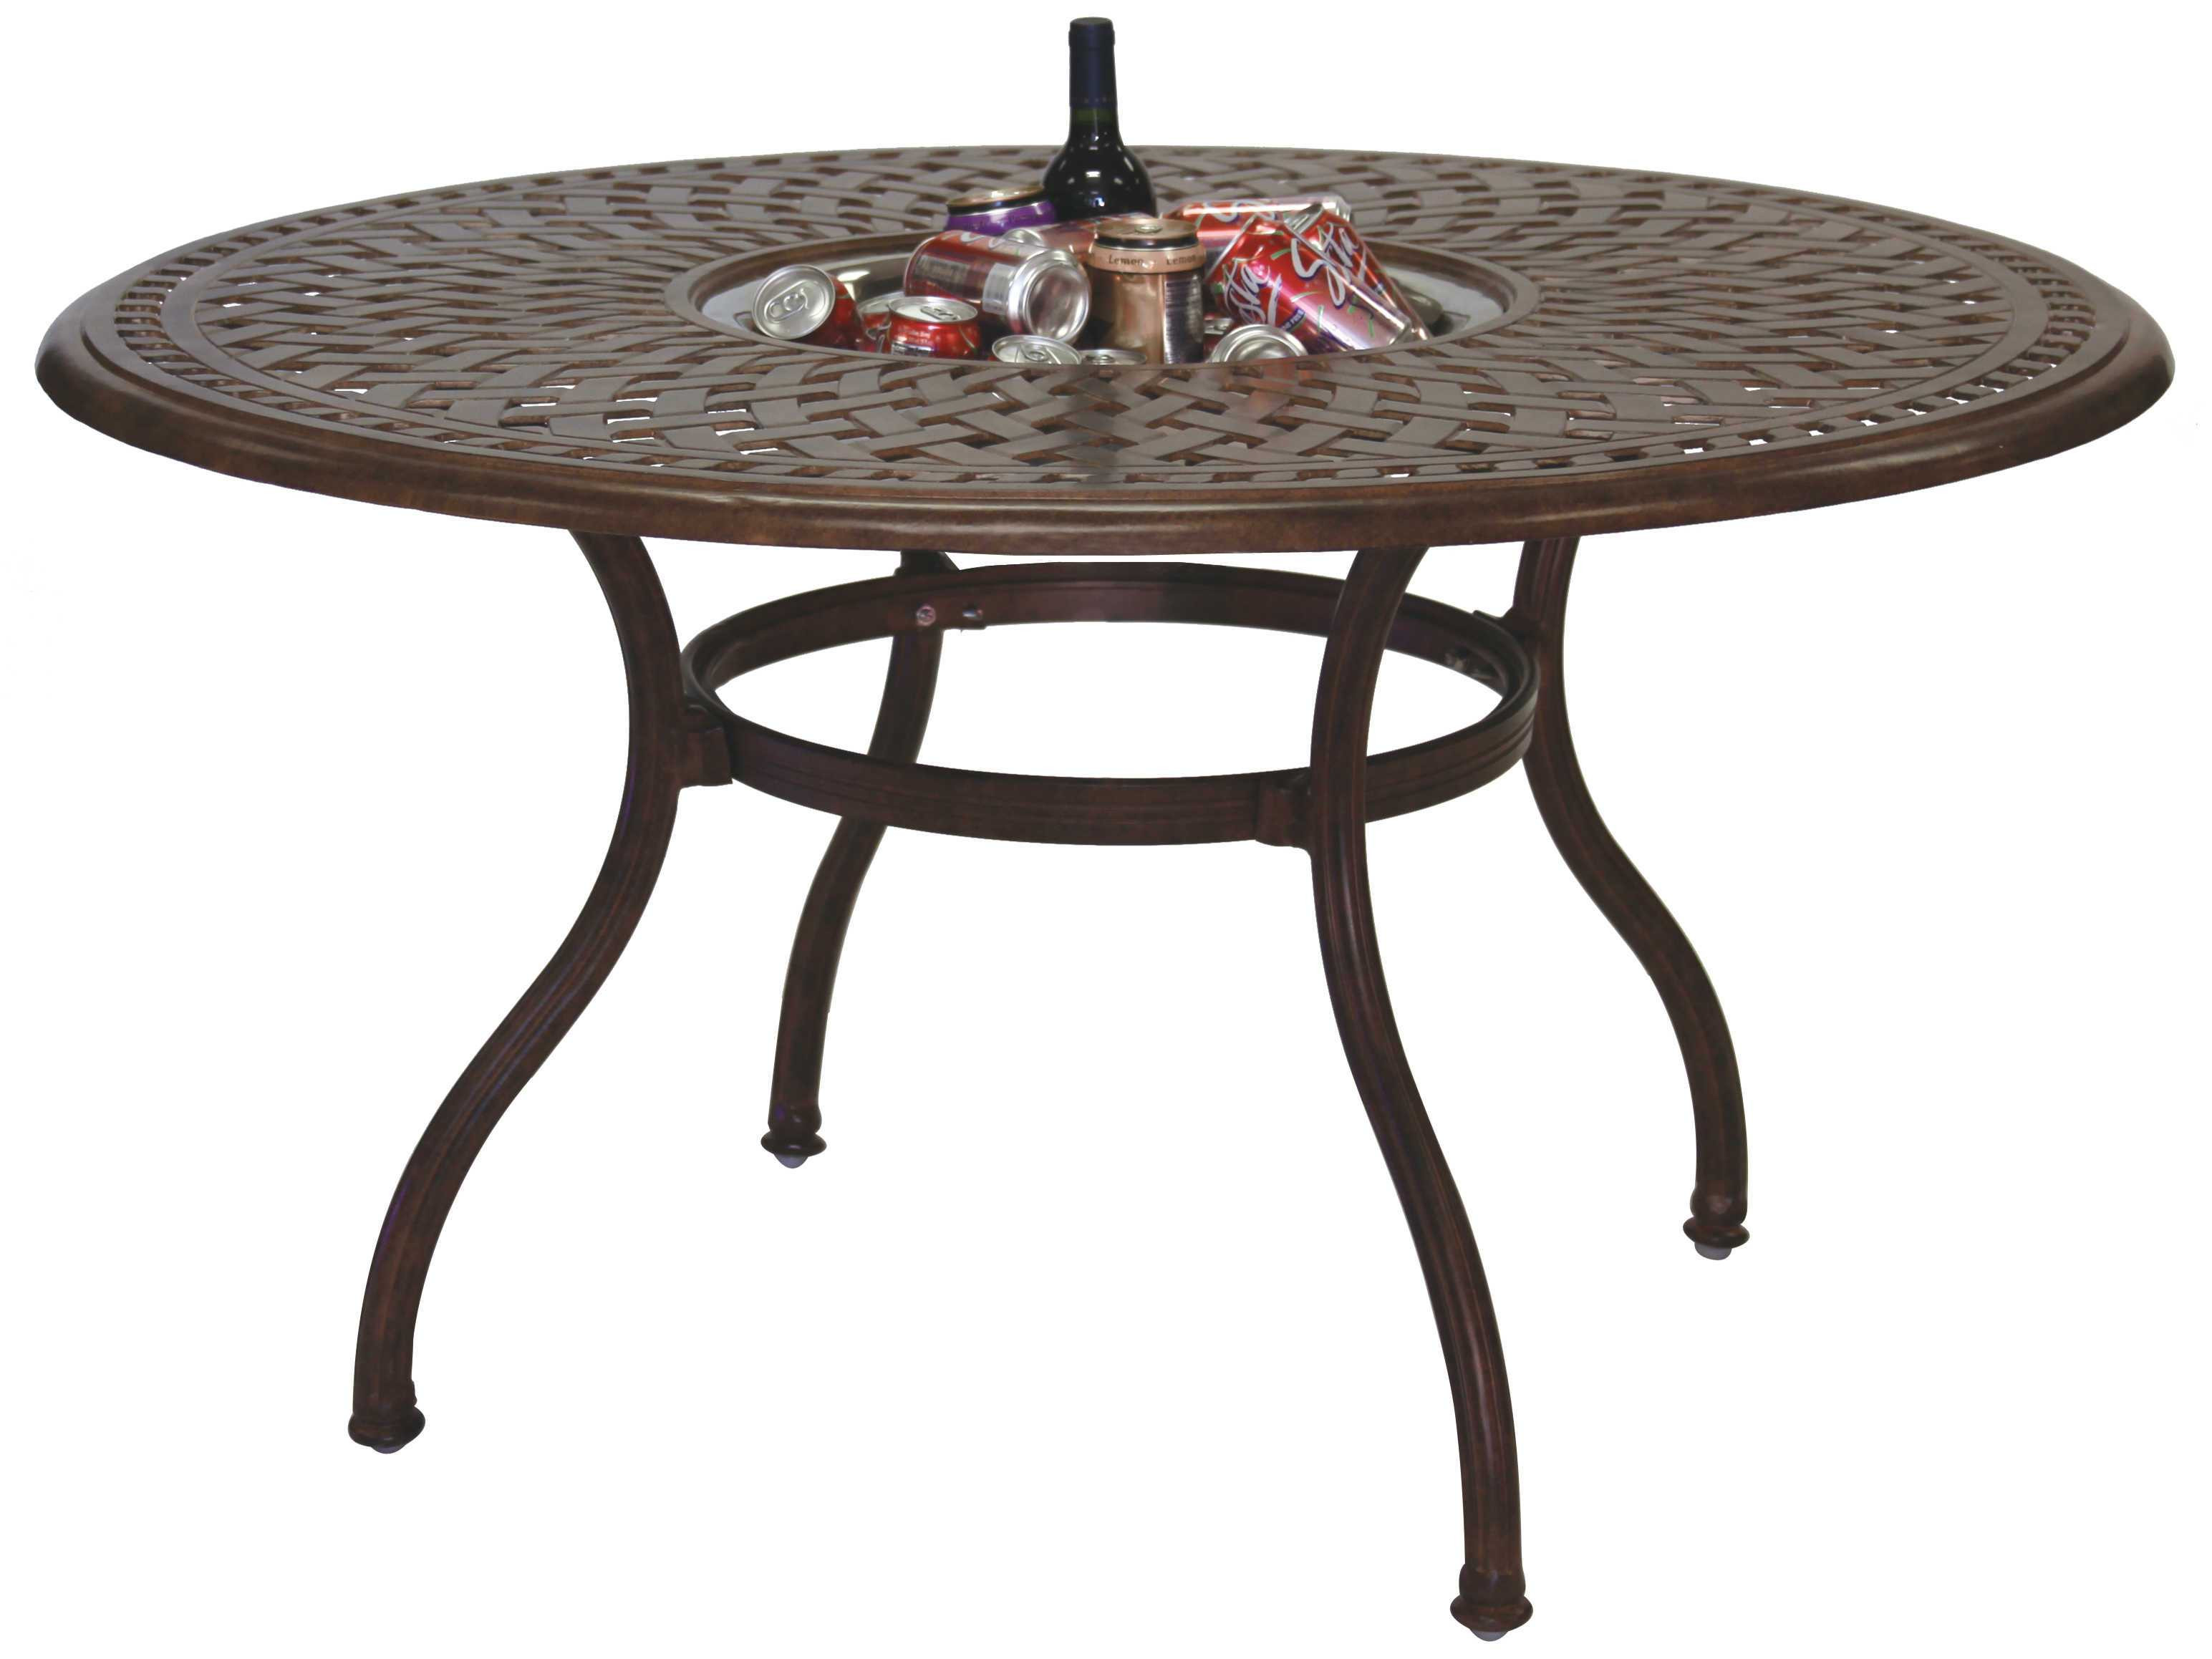 Best ideas about Round Patio Table . Save or Pin Darlee Outdoor Living Series 60 Cast Aluminum 52 Round Now.